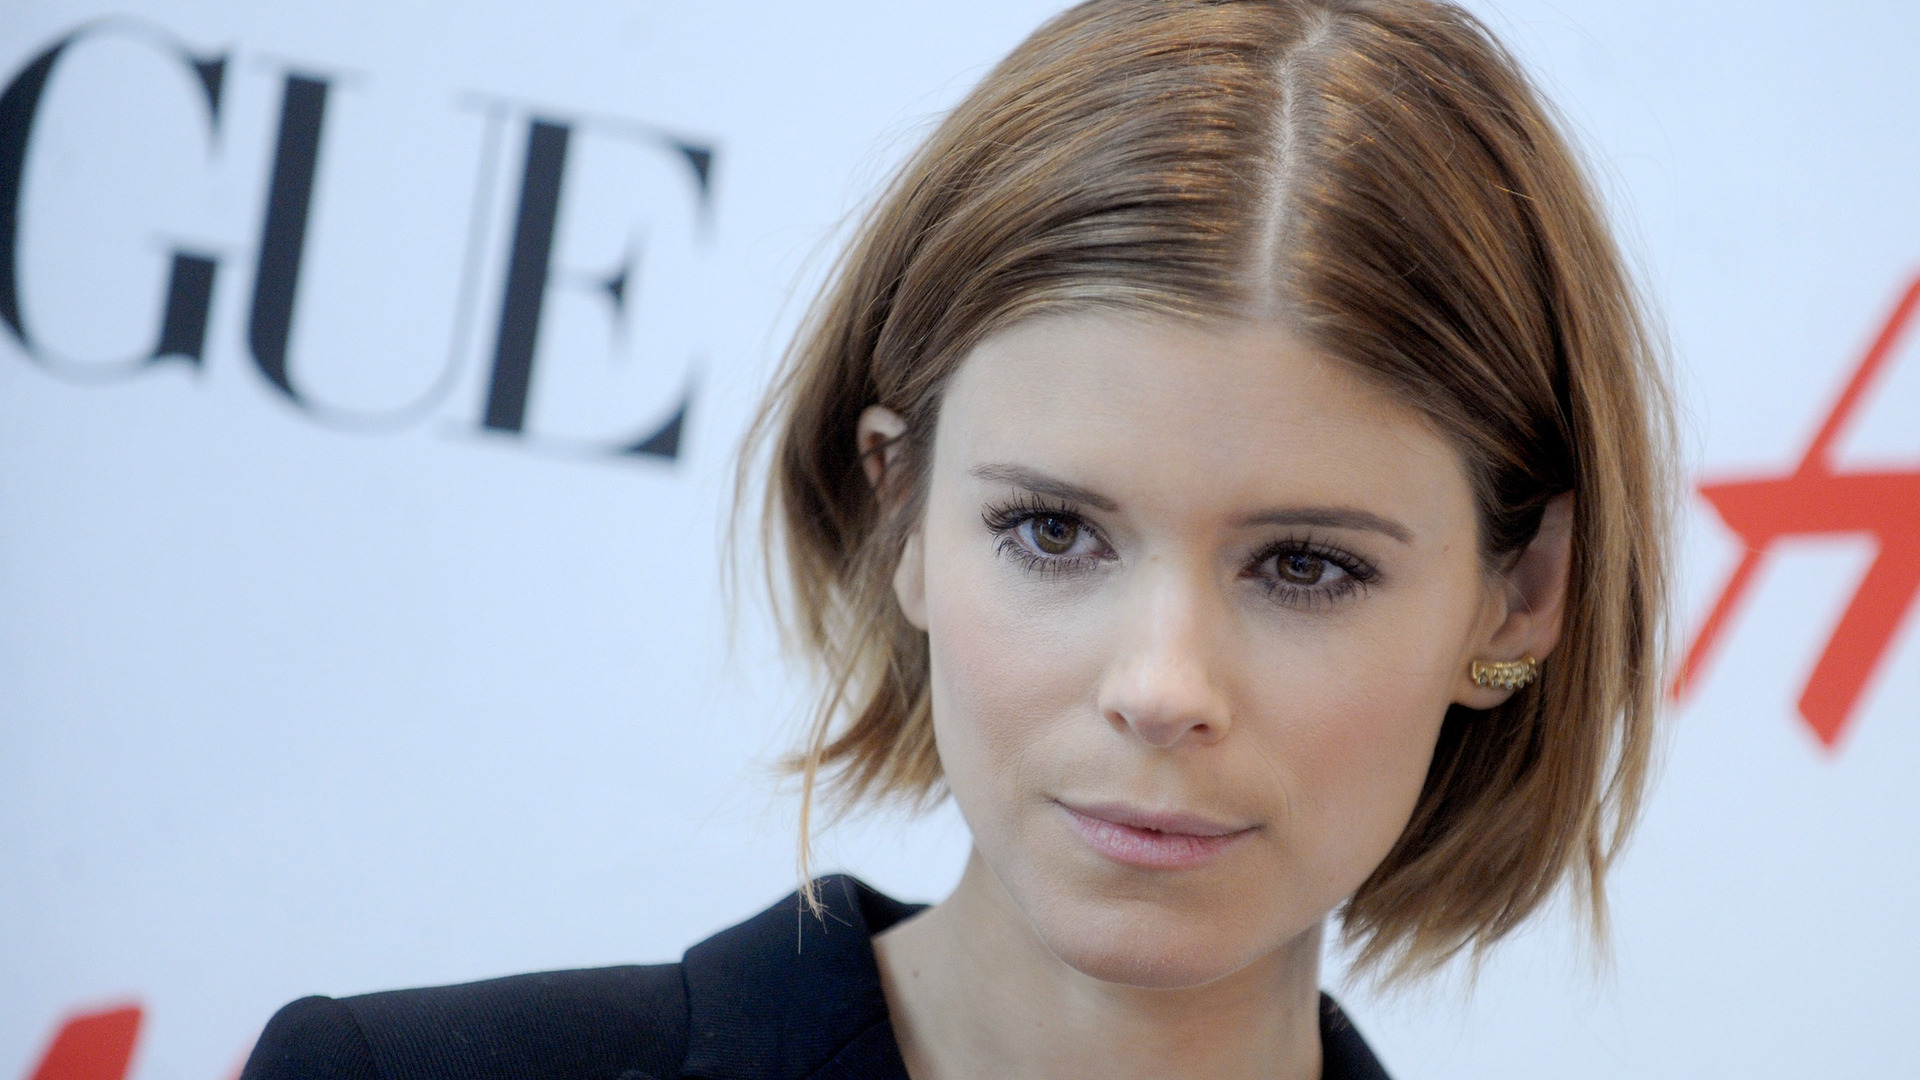 Mara: Kate Mara Wallpapers High Resolution And Quality Download